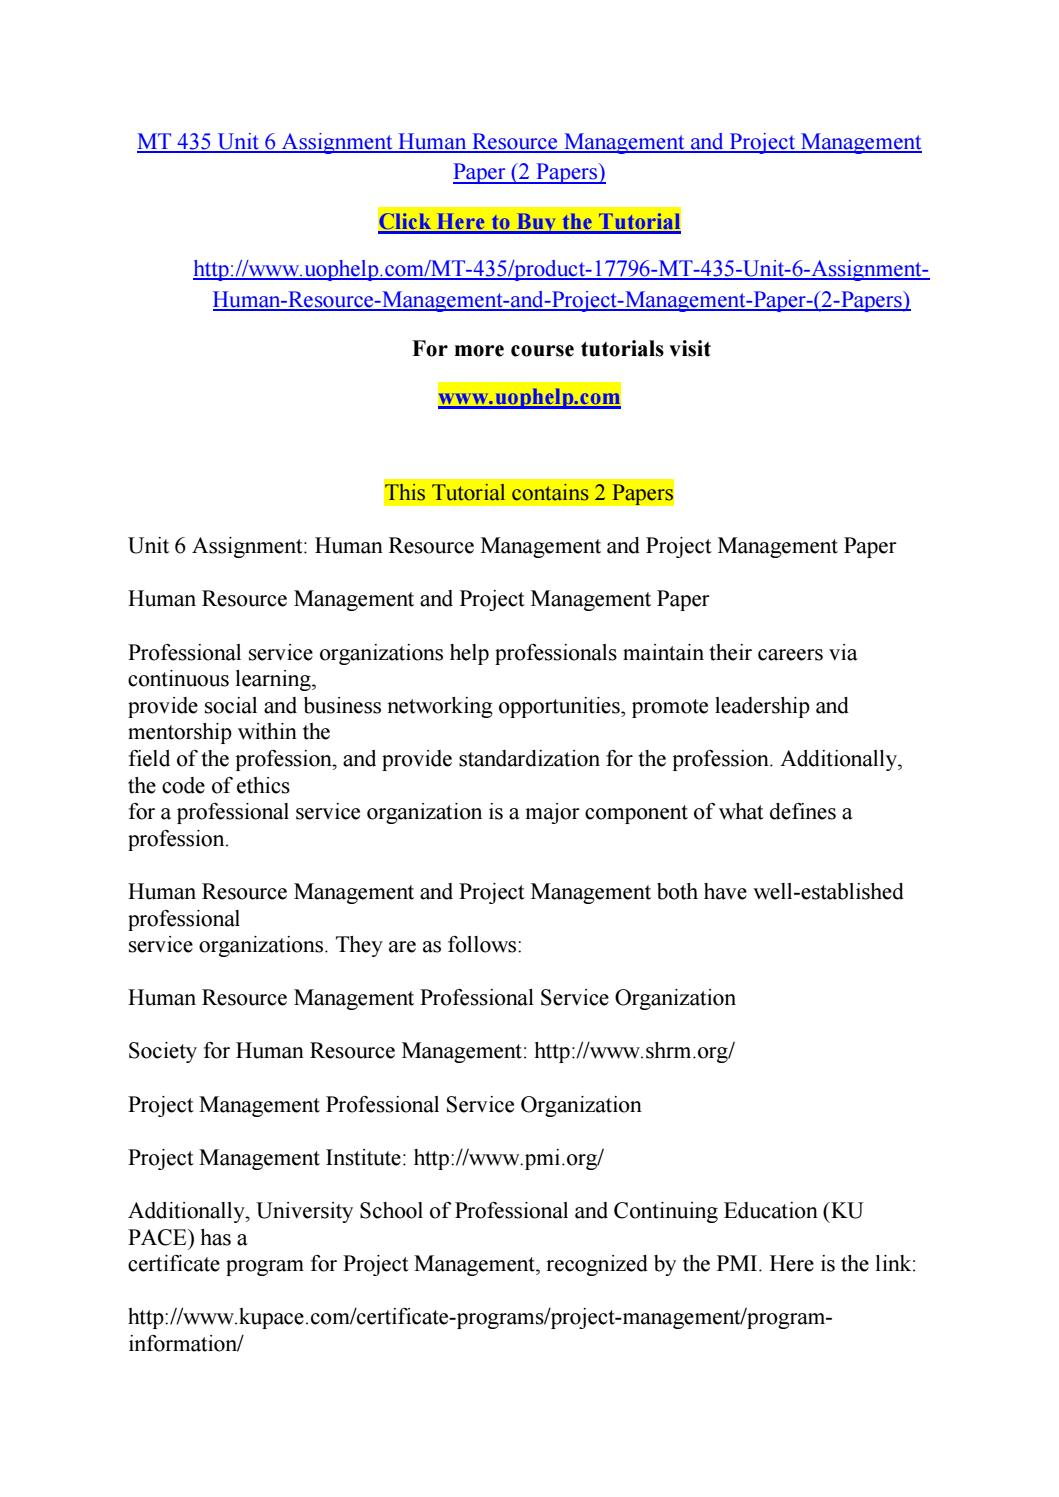 Mt 435 Unit 6 Assignment Human Resource Management And Project